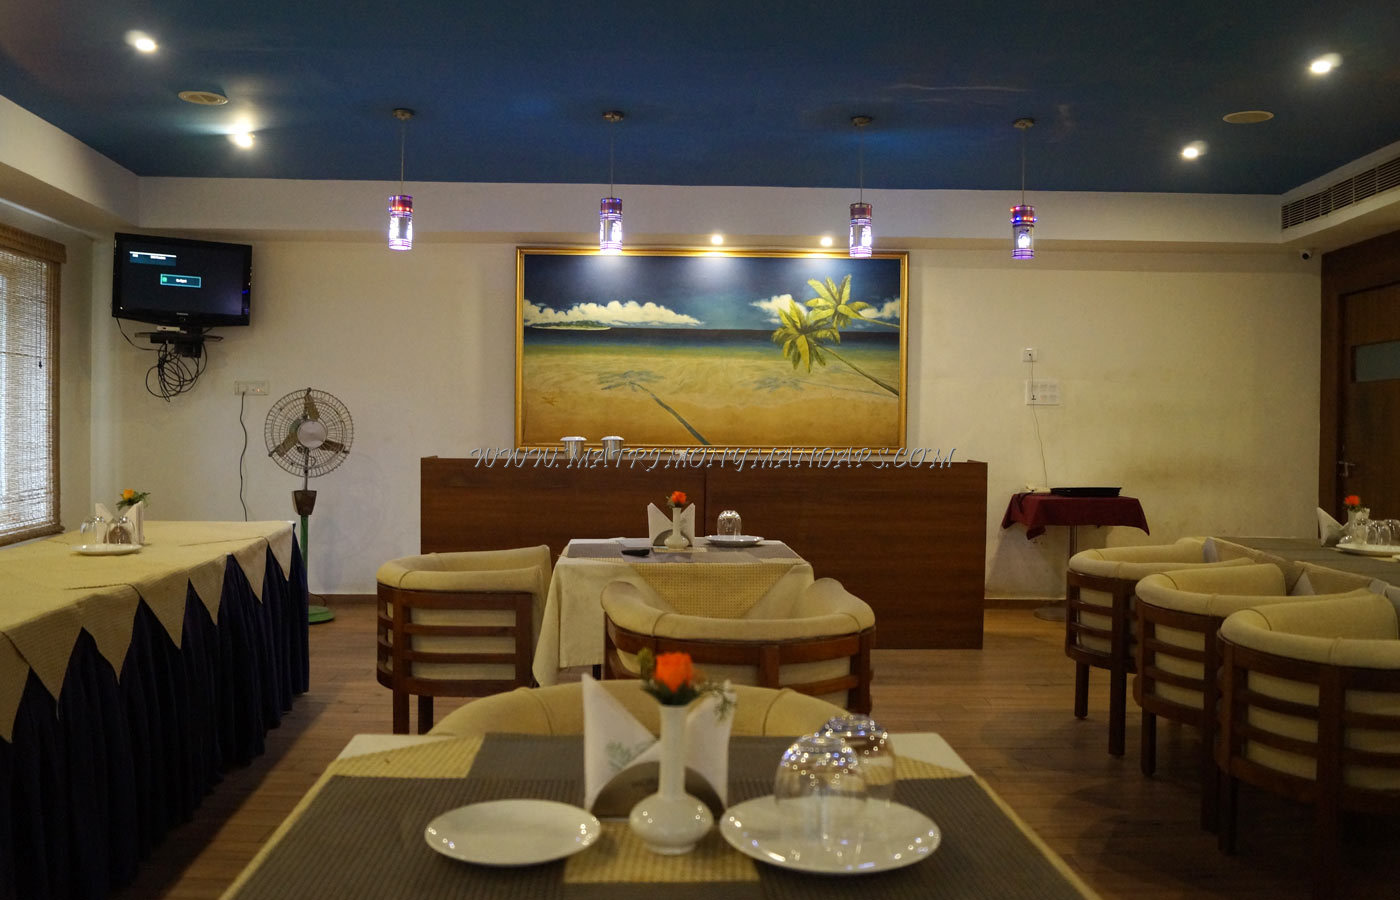 Find the availability of the Hotel Abhirami Abhiram (A/C) in Kattakkada, Trivandrum and avail special offers